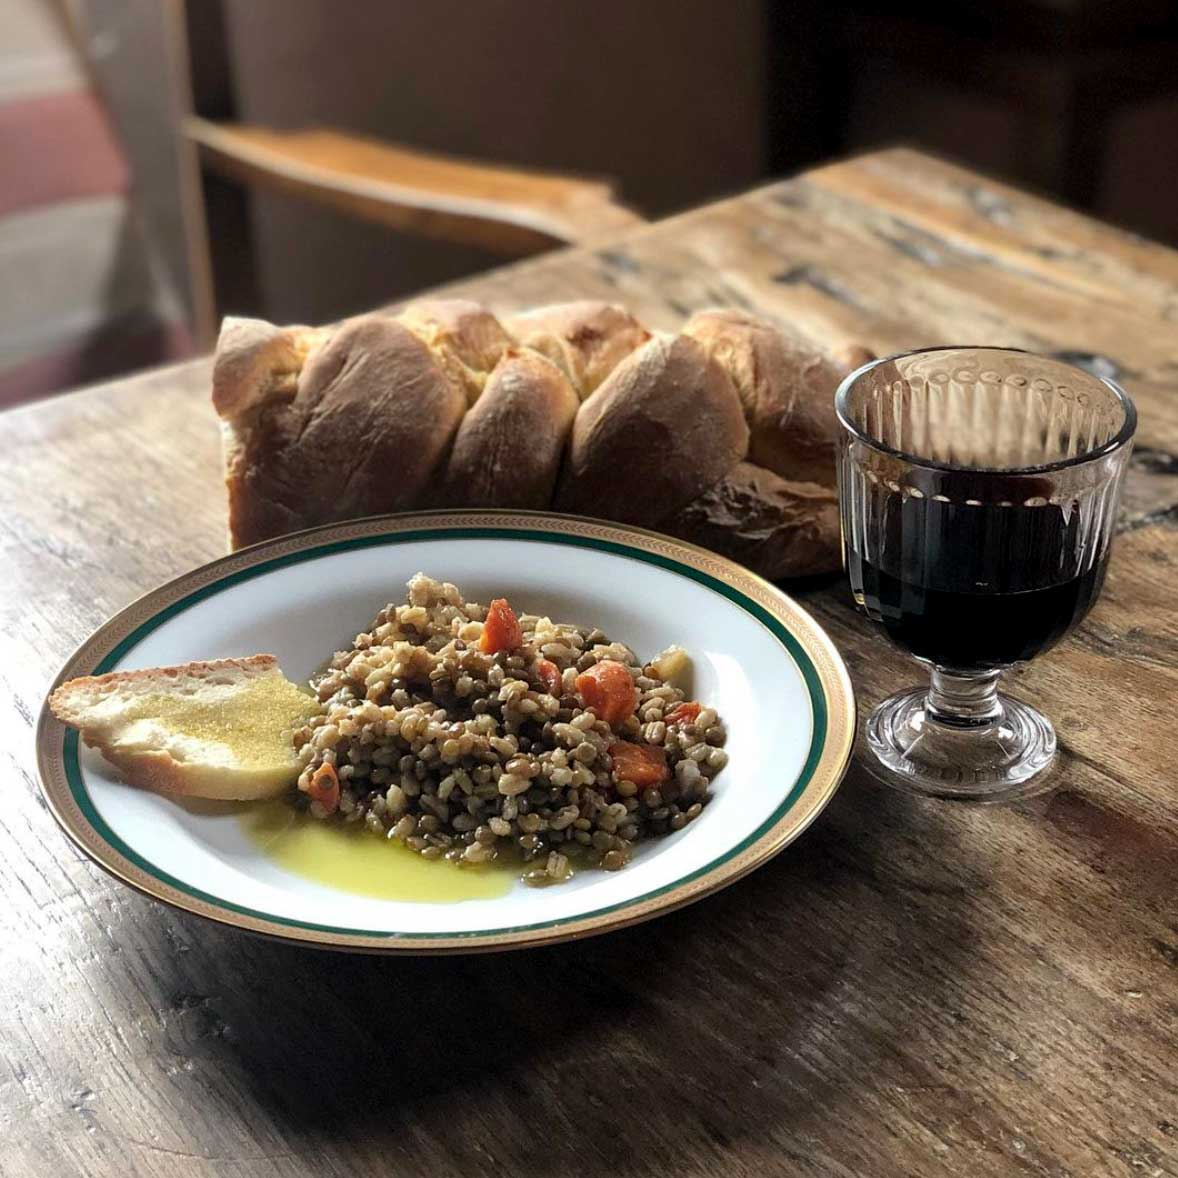 Lentil soup, bread and wine